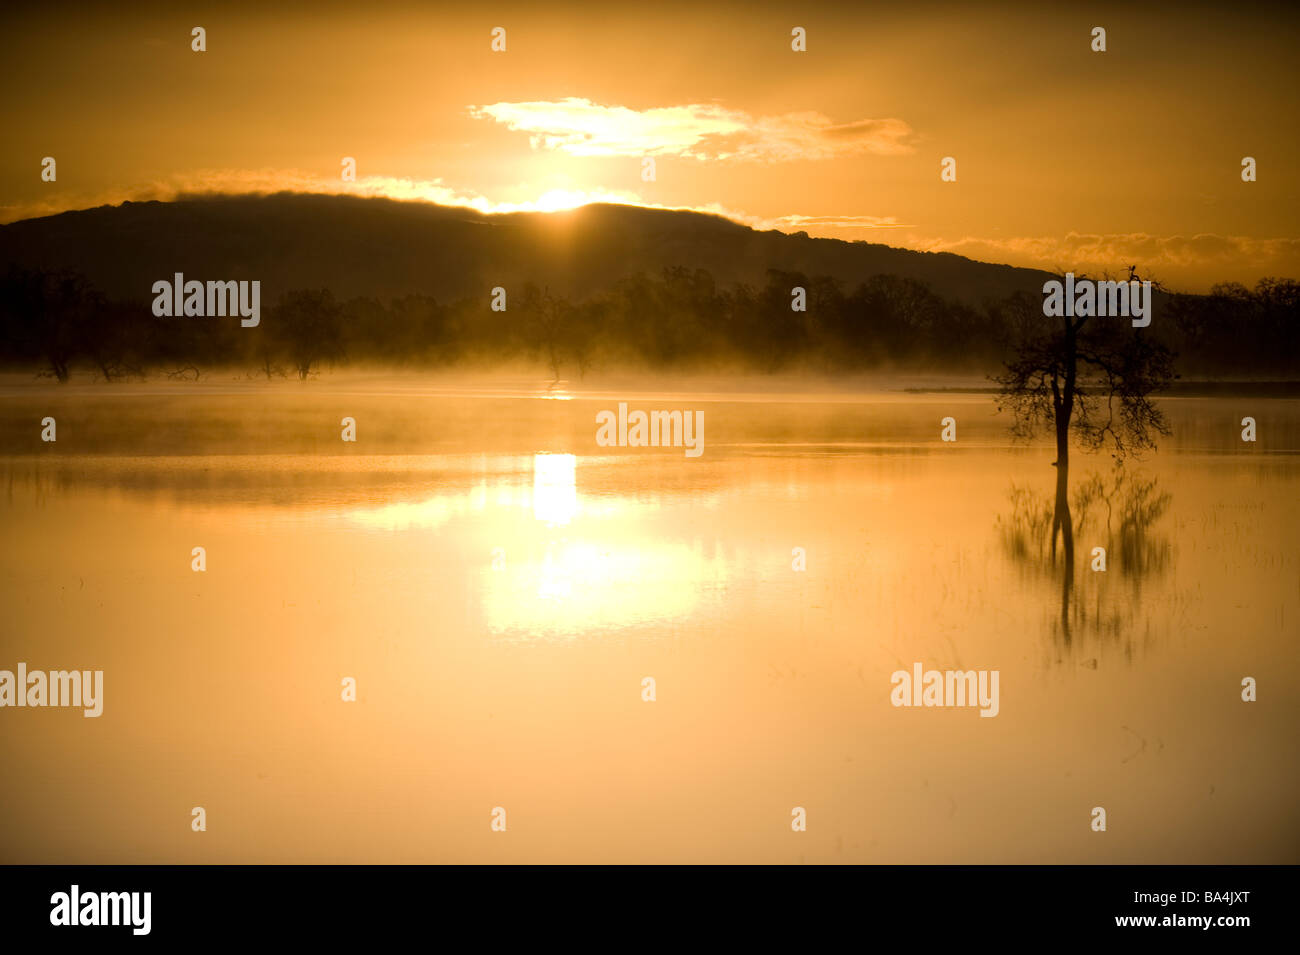 Trees and reflections in water at sunrise - Stock Image